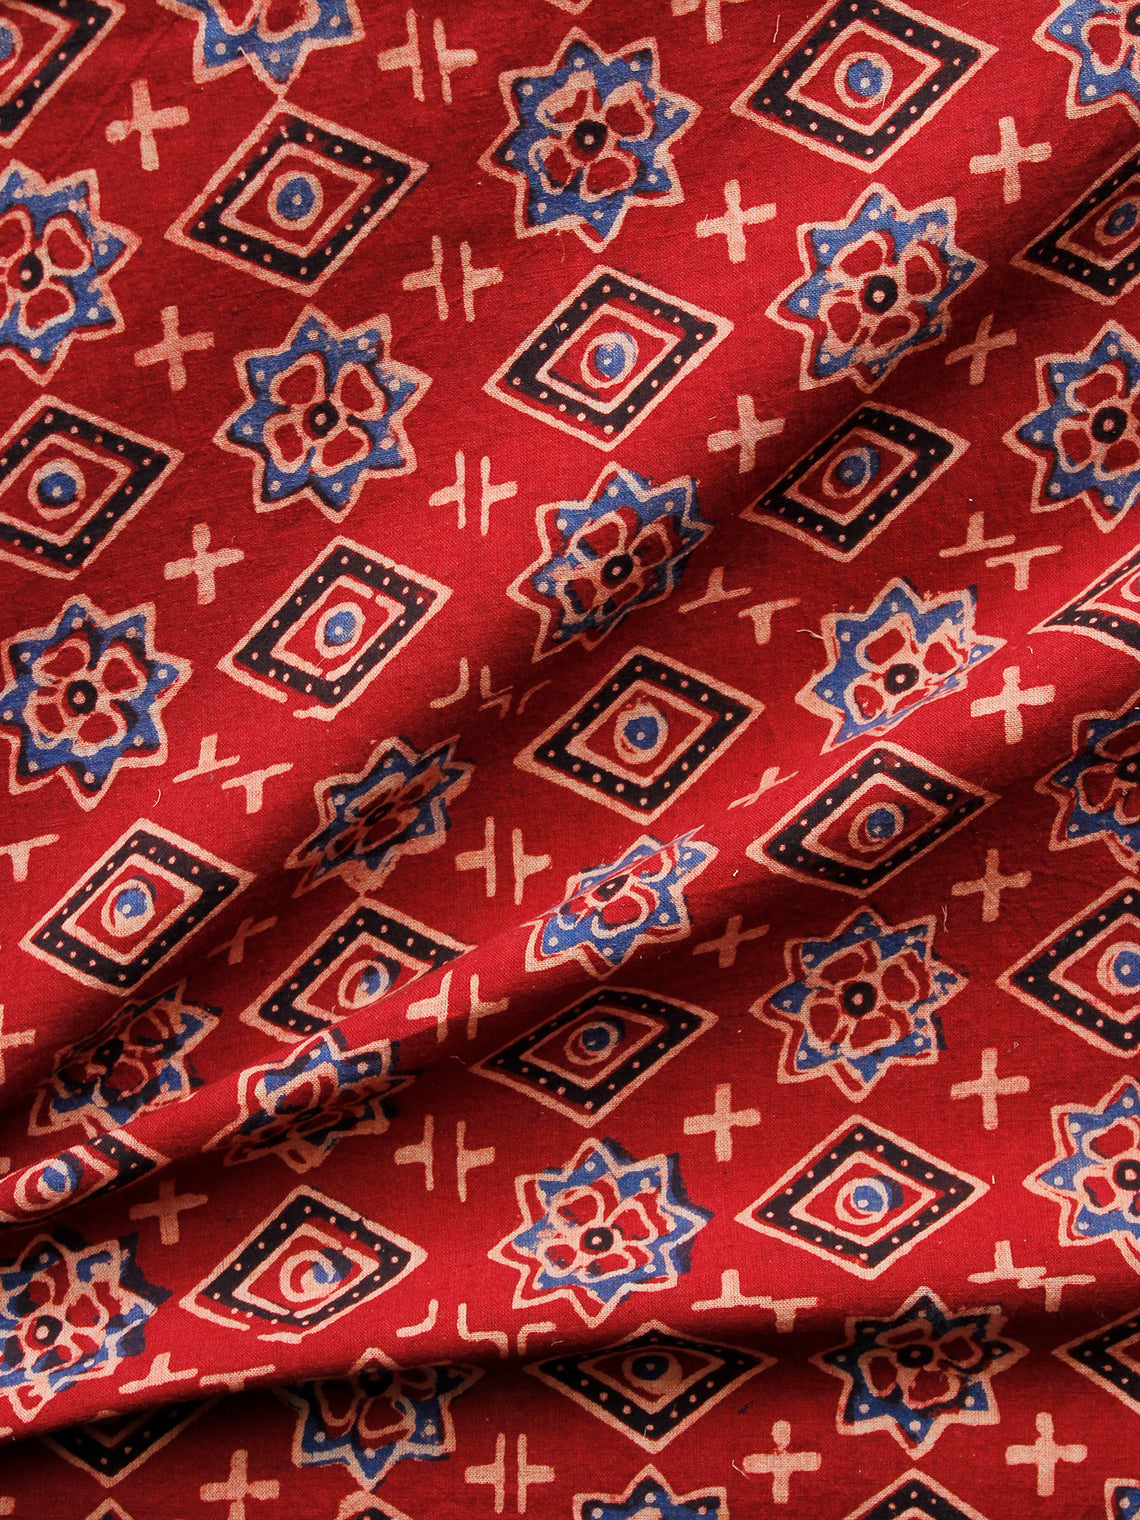 Red Blue Black Ivory Ajrakh Hand Block Printed Cotton Fabric Per Meter - F003F1603